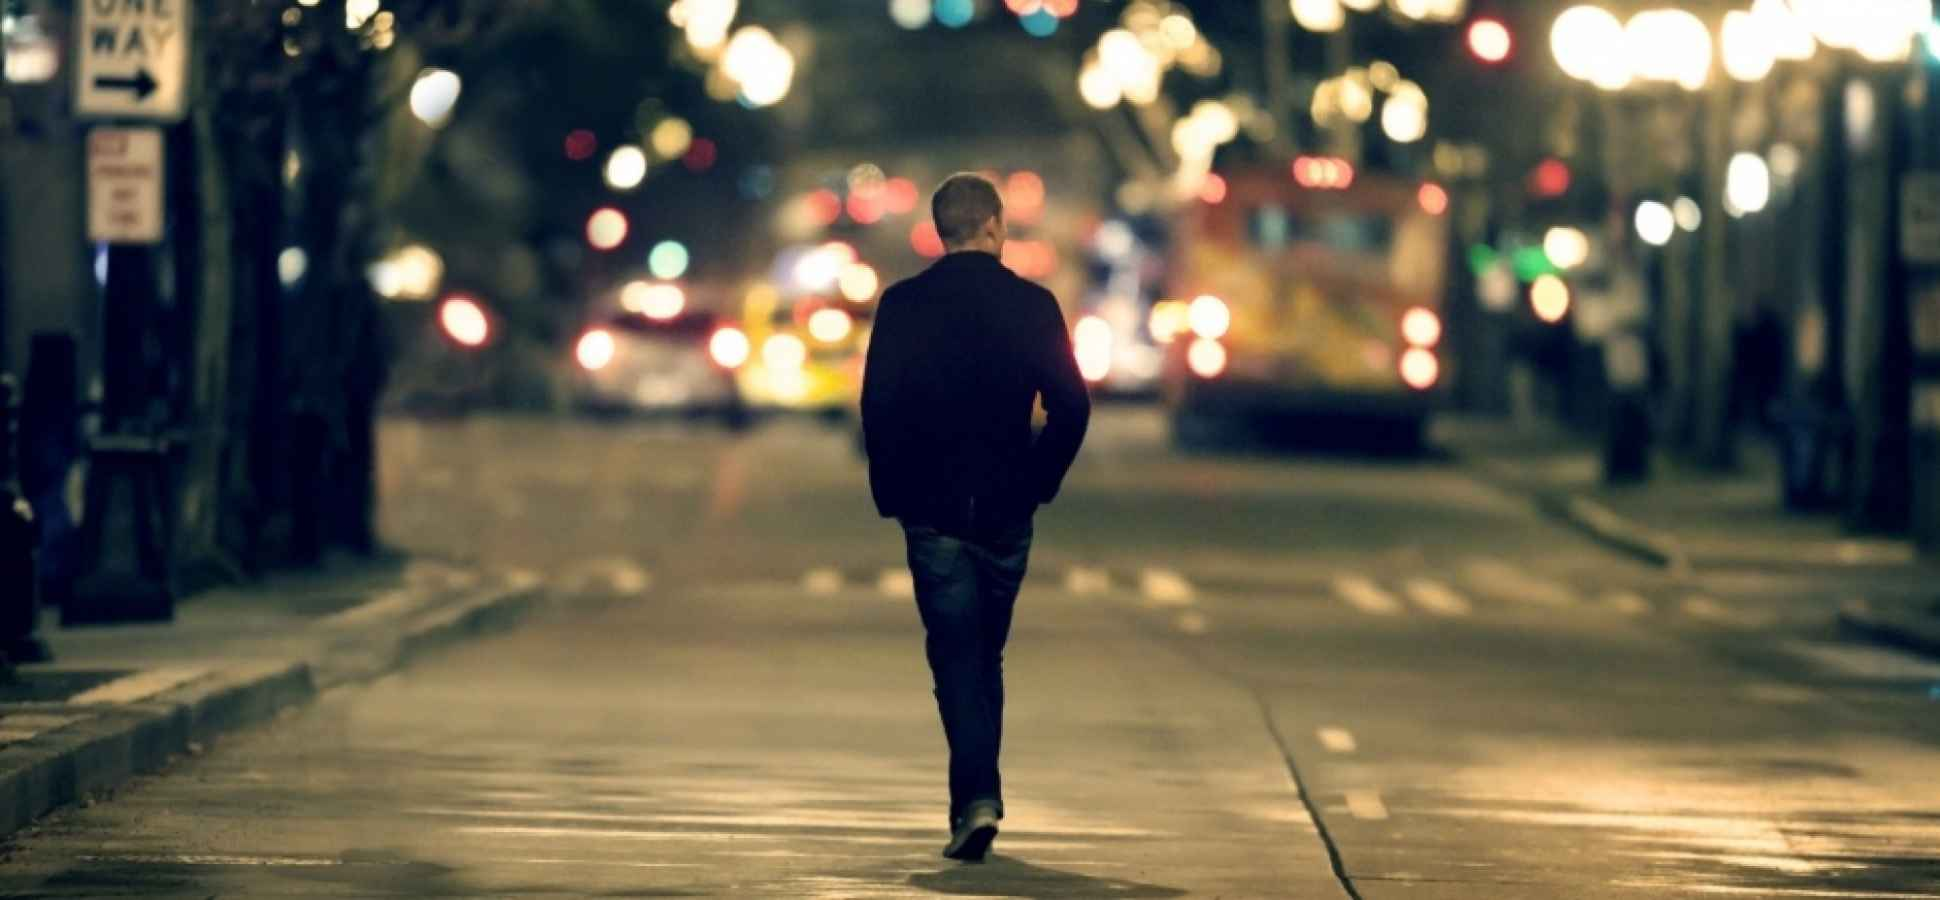 5 Smart Ways to Take the Loneliness Out of Being a Solopreneur